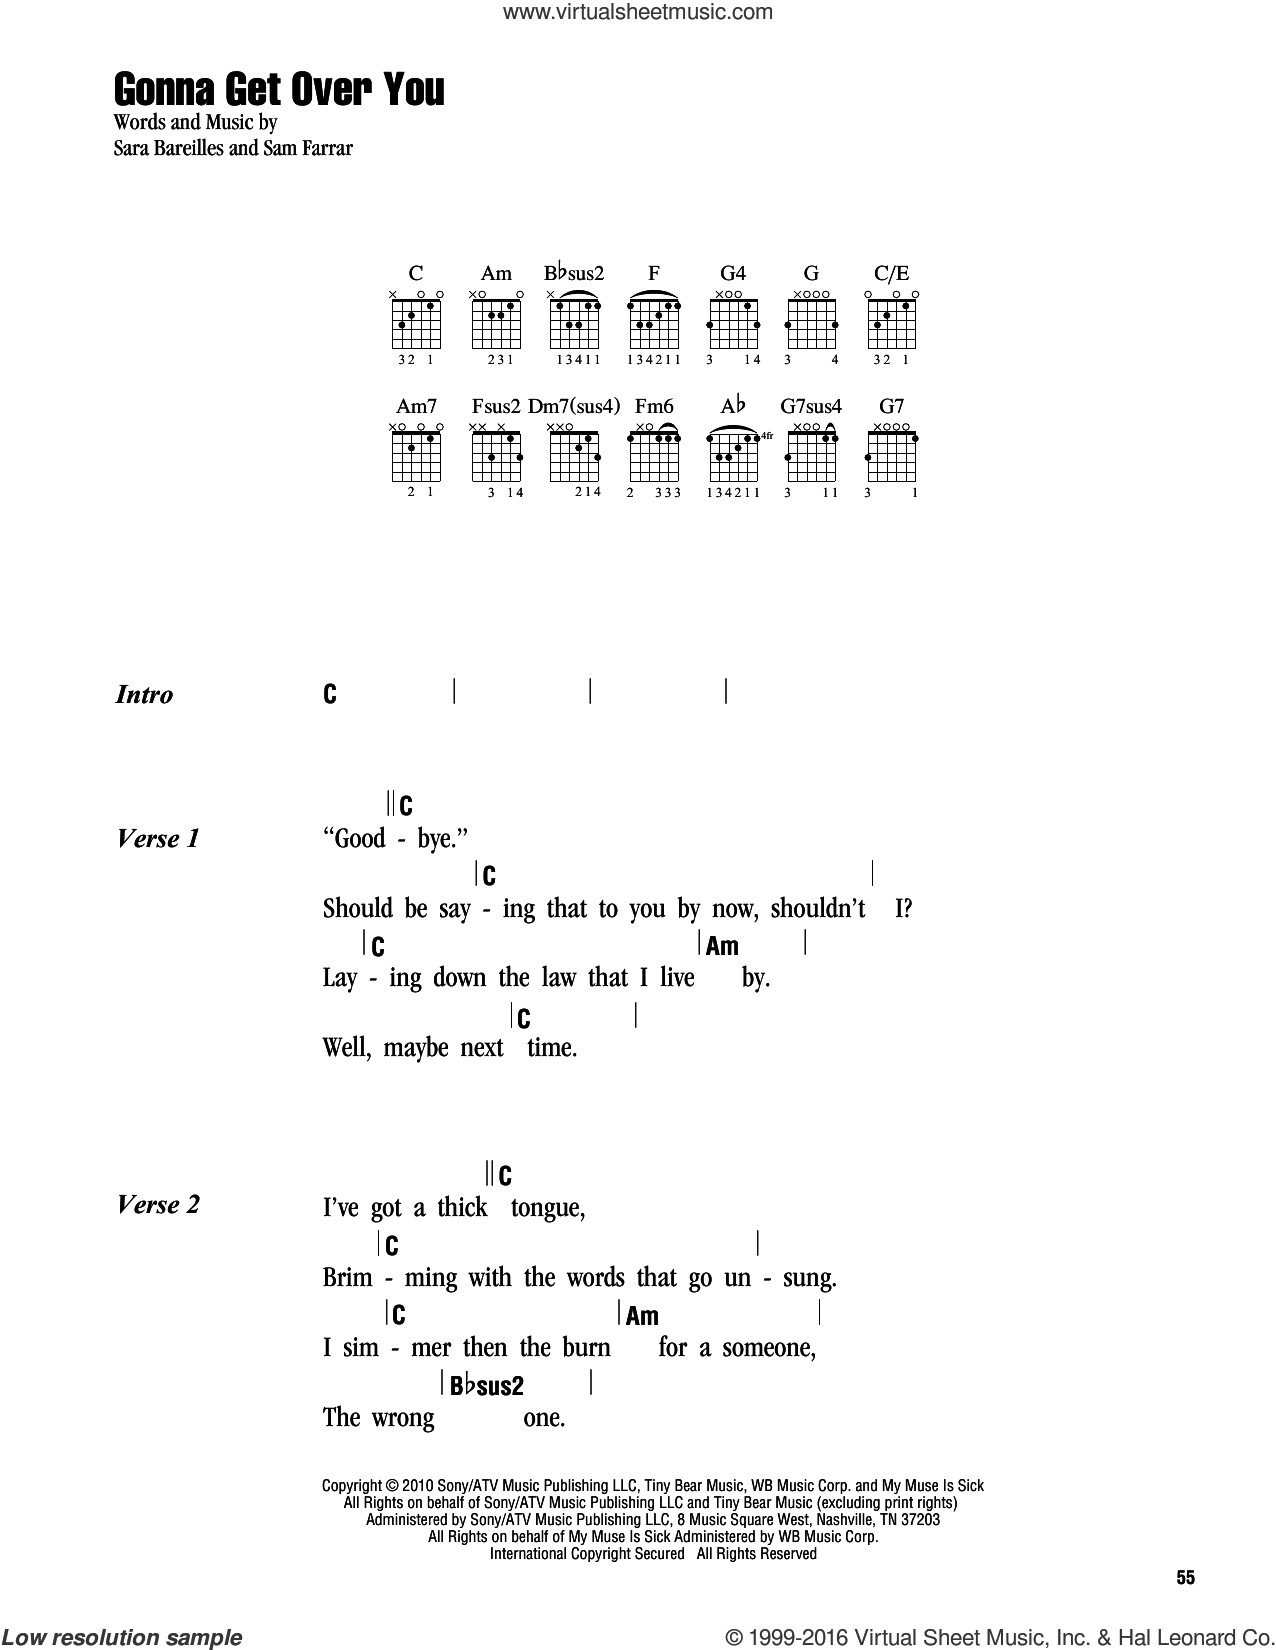 Gonna Get Over You sheet music for guitar (chords) by Sara Bareilles and Sam Farrar. Score Image Preview.